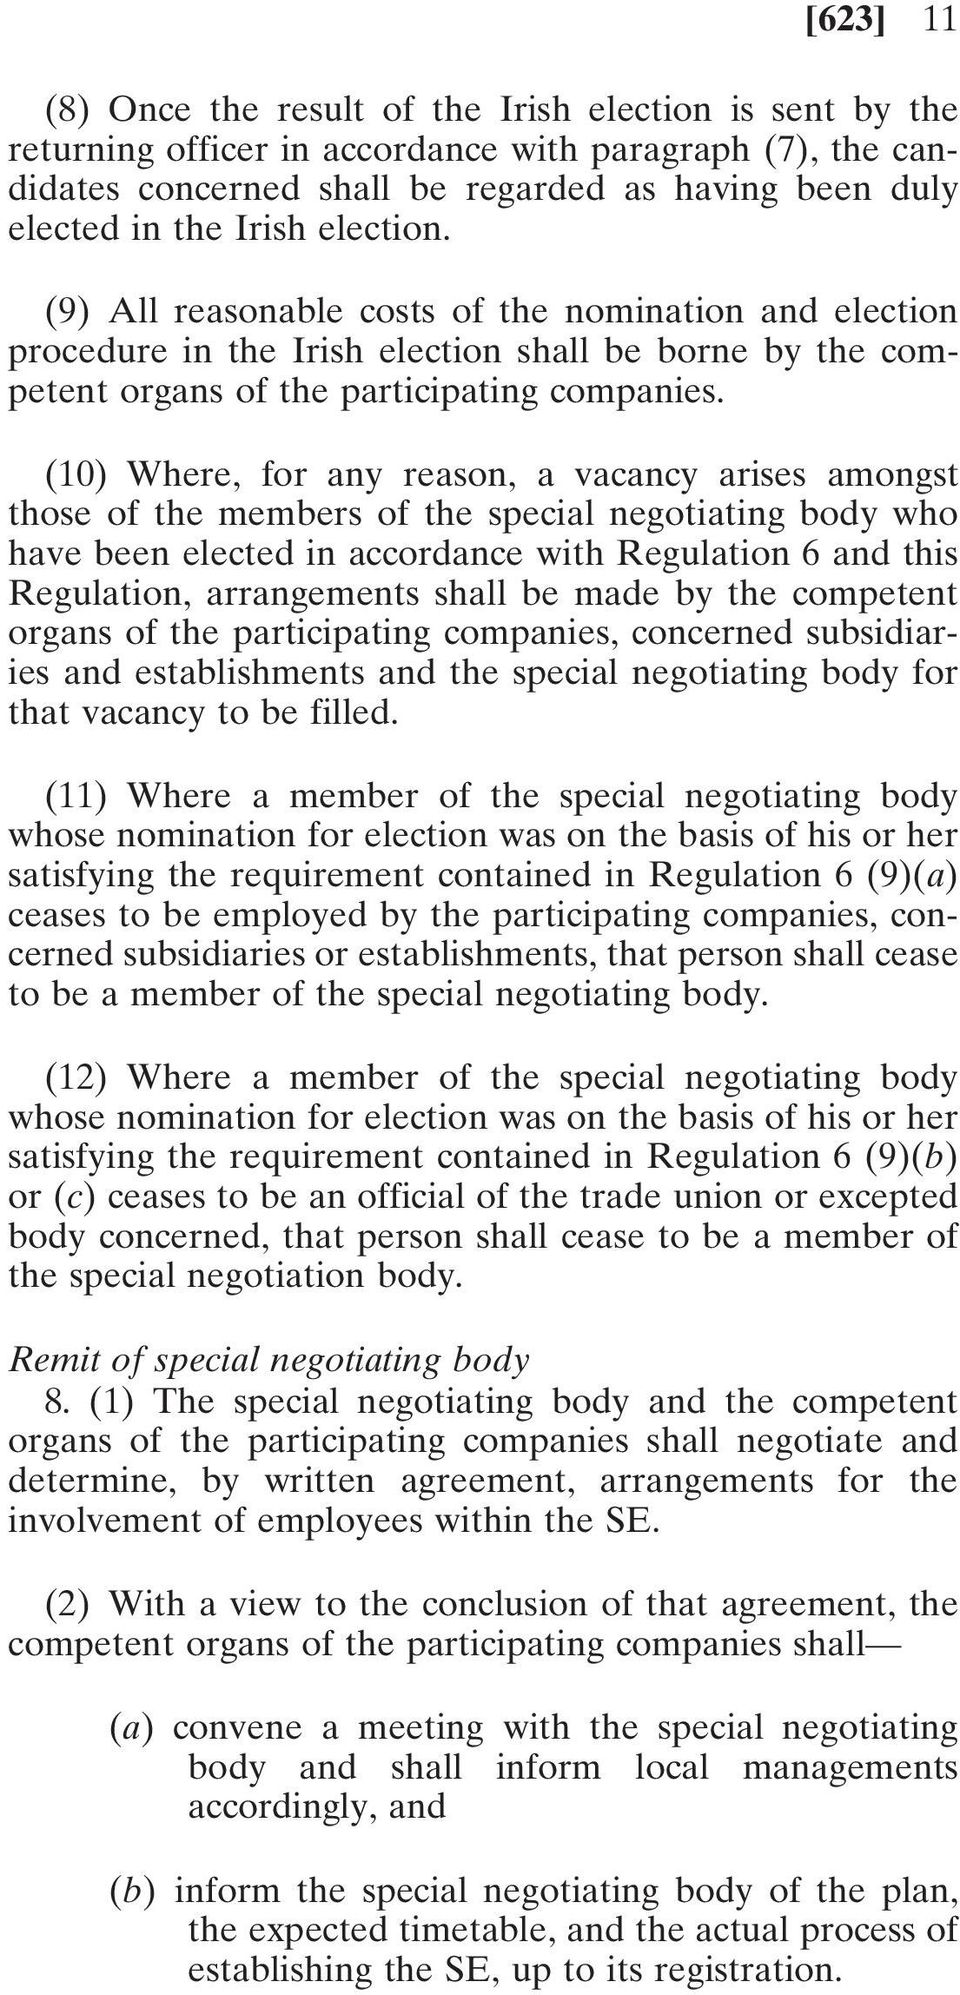 (10) Where, for any reason, a vacancy arises amongst those of the members of the special negotiating body who have been elected in accordance with Regulation 6 and this Regulation, arrangements shall